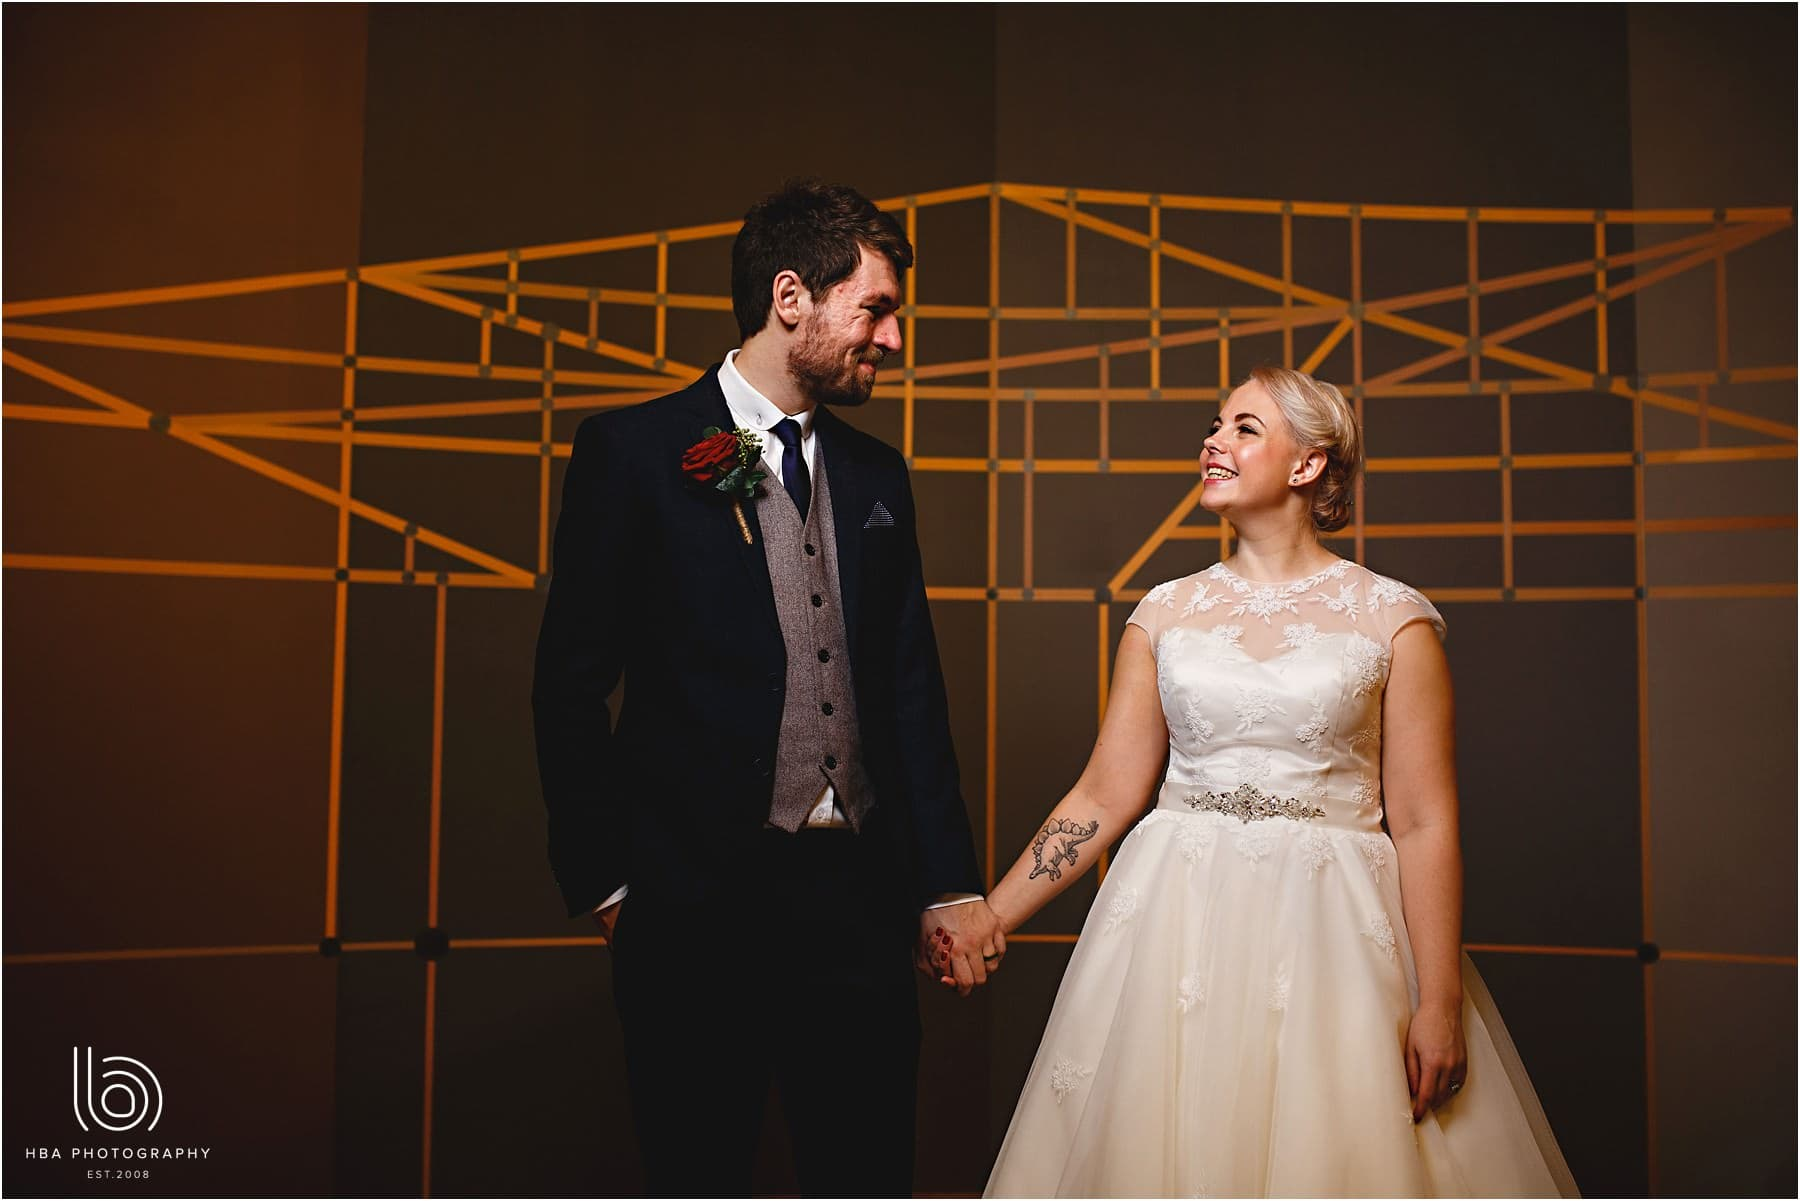 The bride and groom stood next to a geometric wall pattern in orange